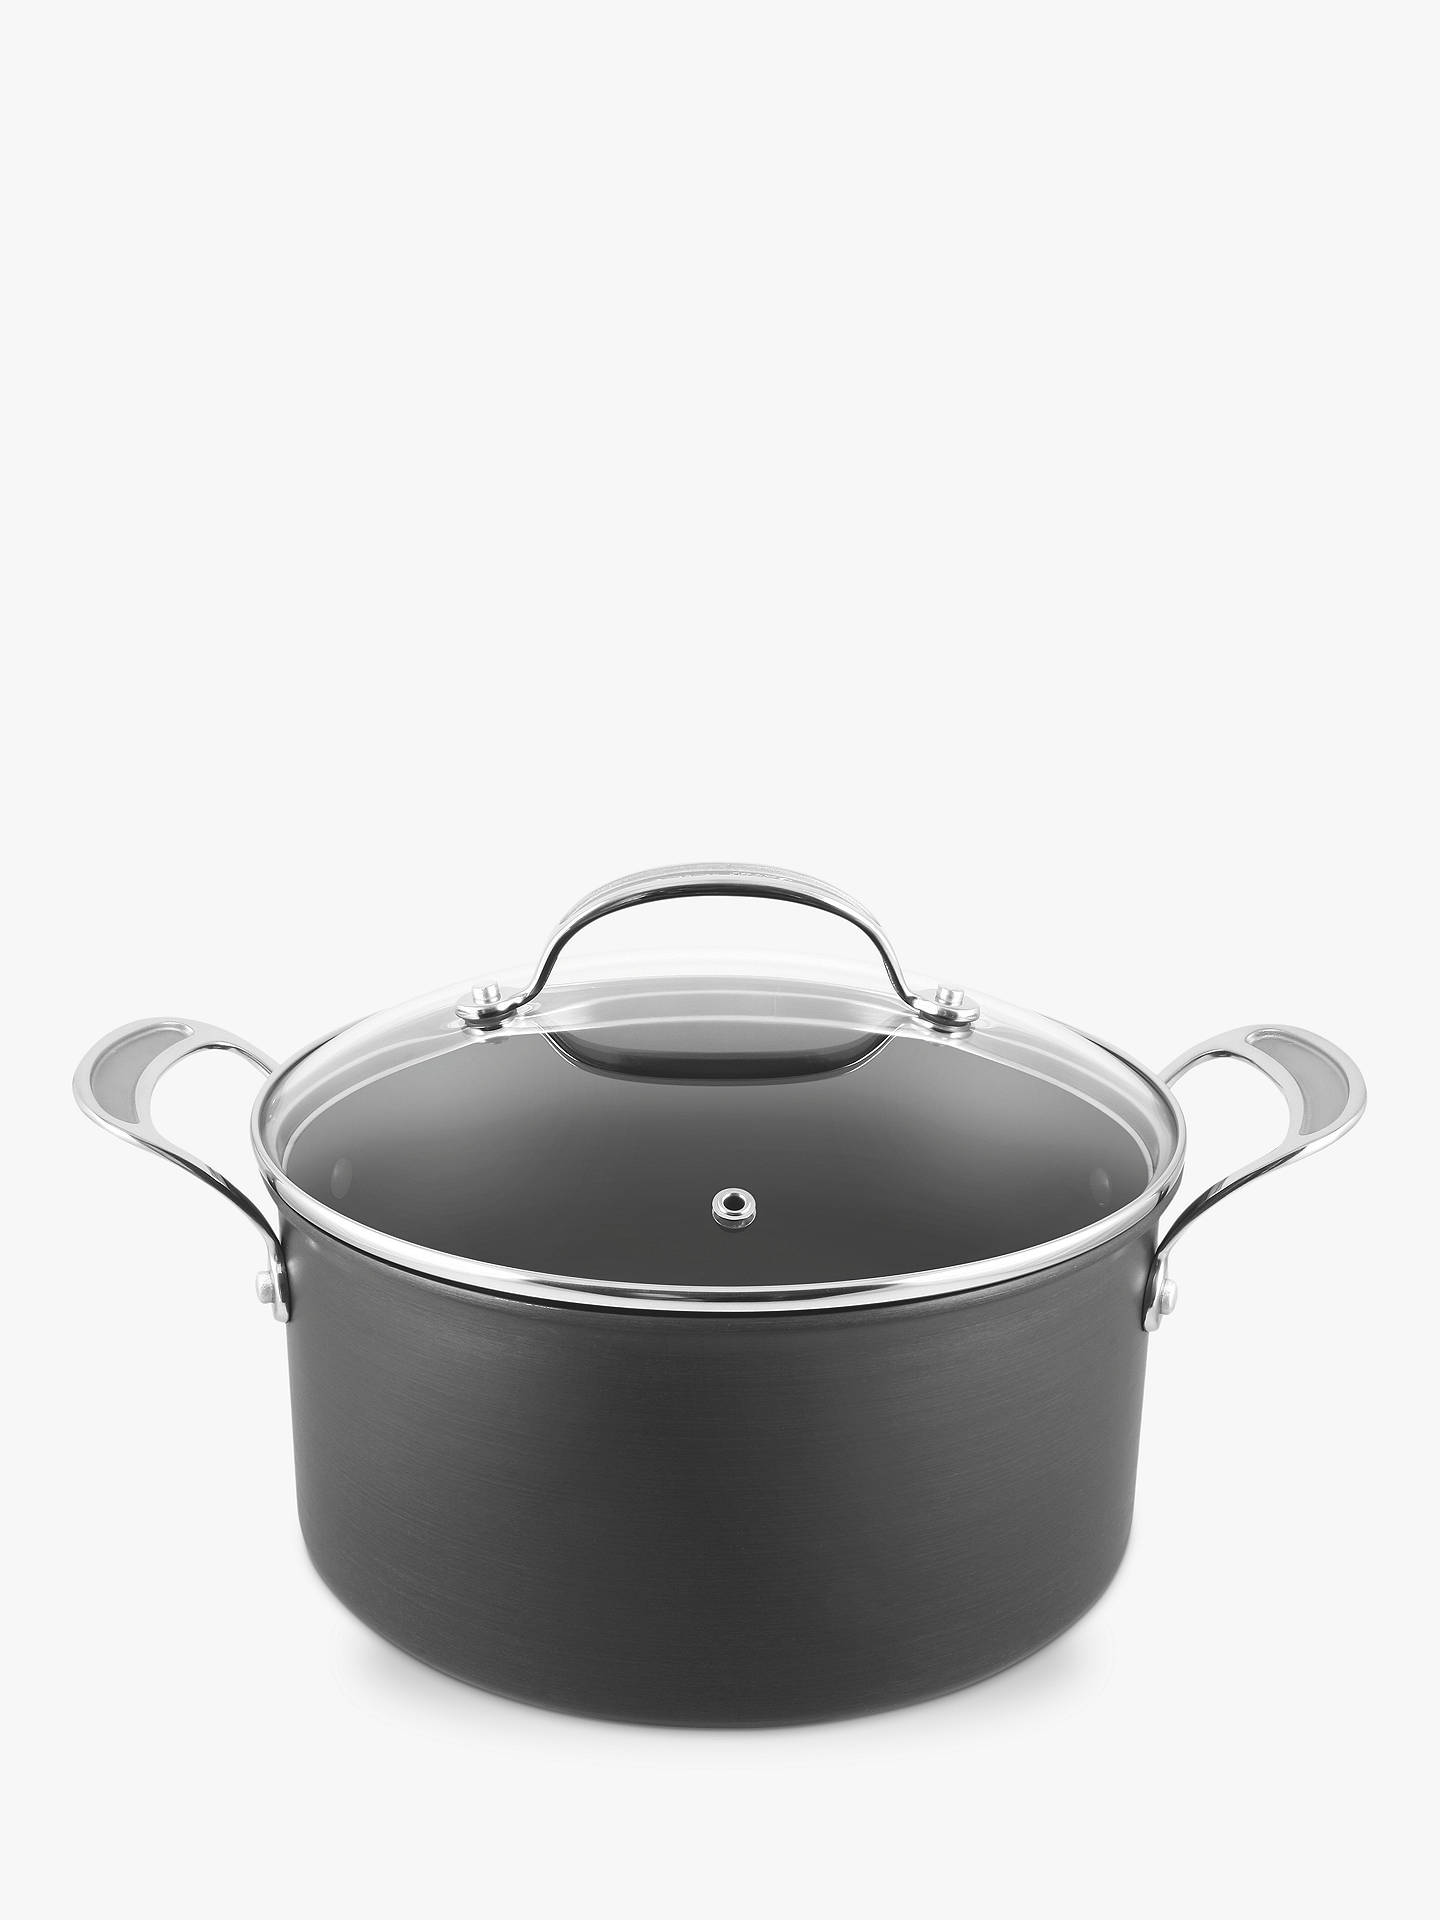 Buy Jamie Oliver by Tefal Hard Anodised Aluminium Non-Stick Stock Pot, 24cm Online at johnlewis.com